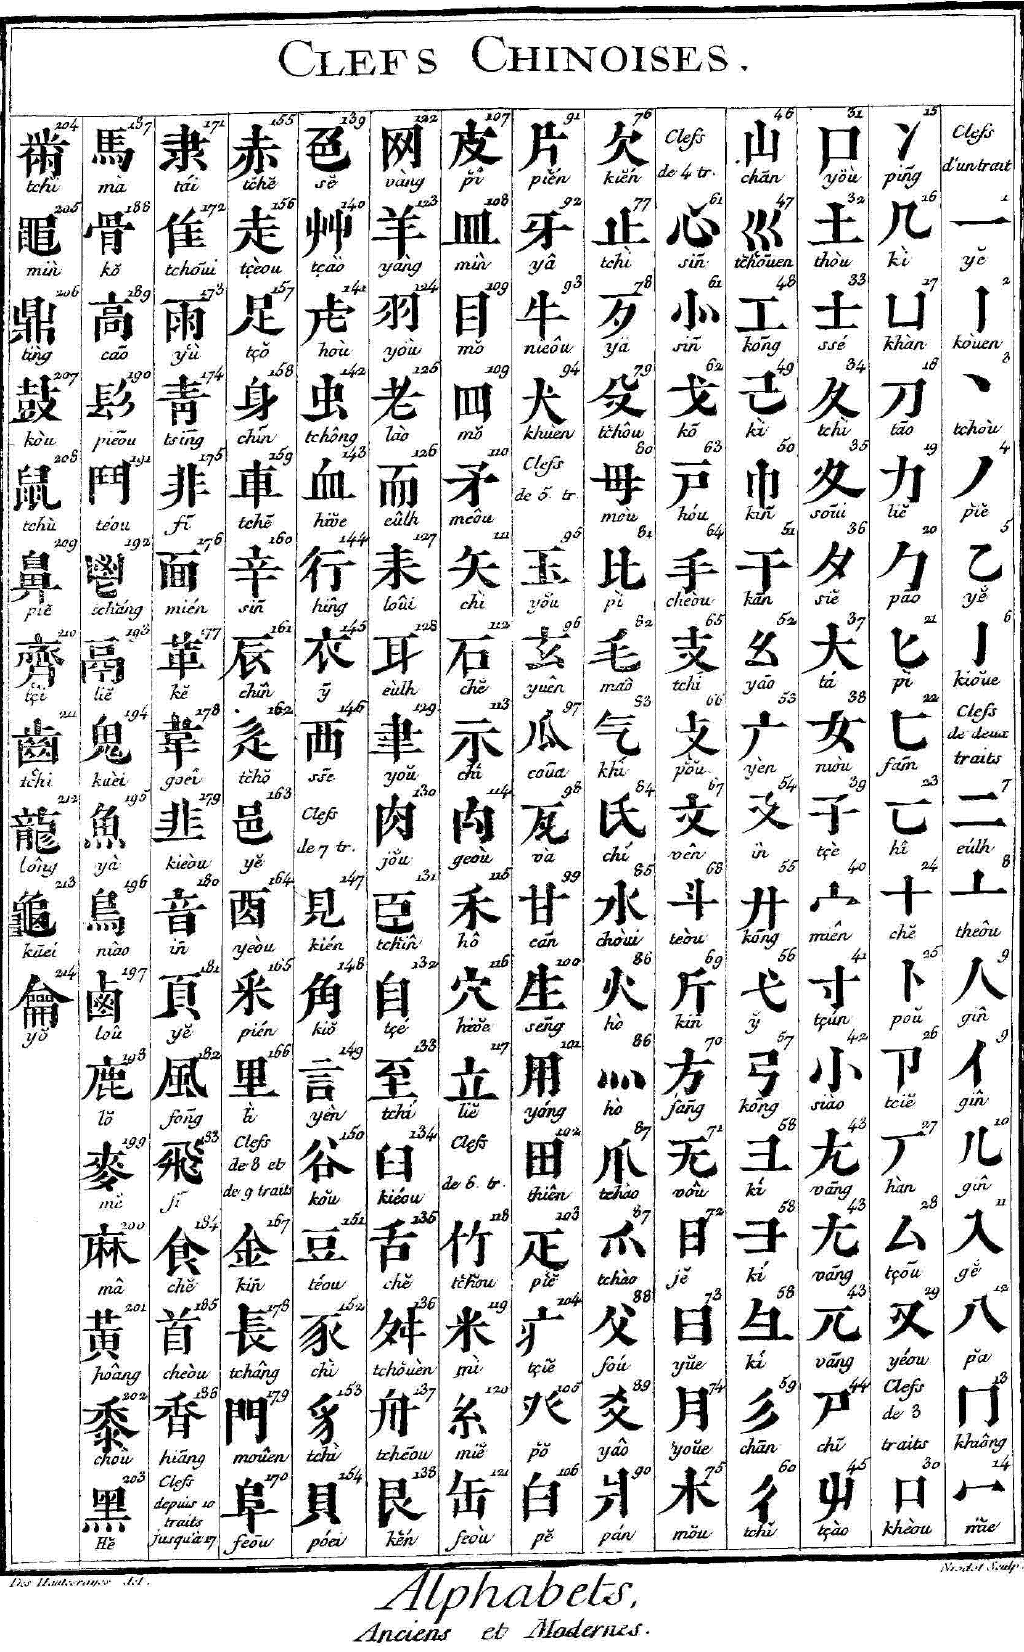 214 cl s chinoises l 39 encyclop die caract res alphabets de langues mortes vivantes - Lettre chinoise alphabet ...